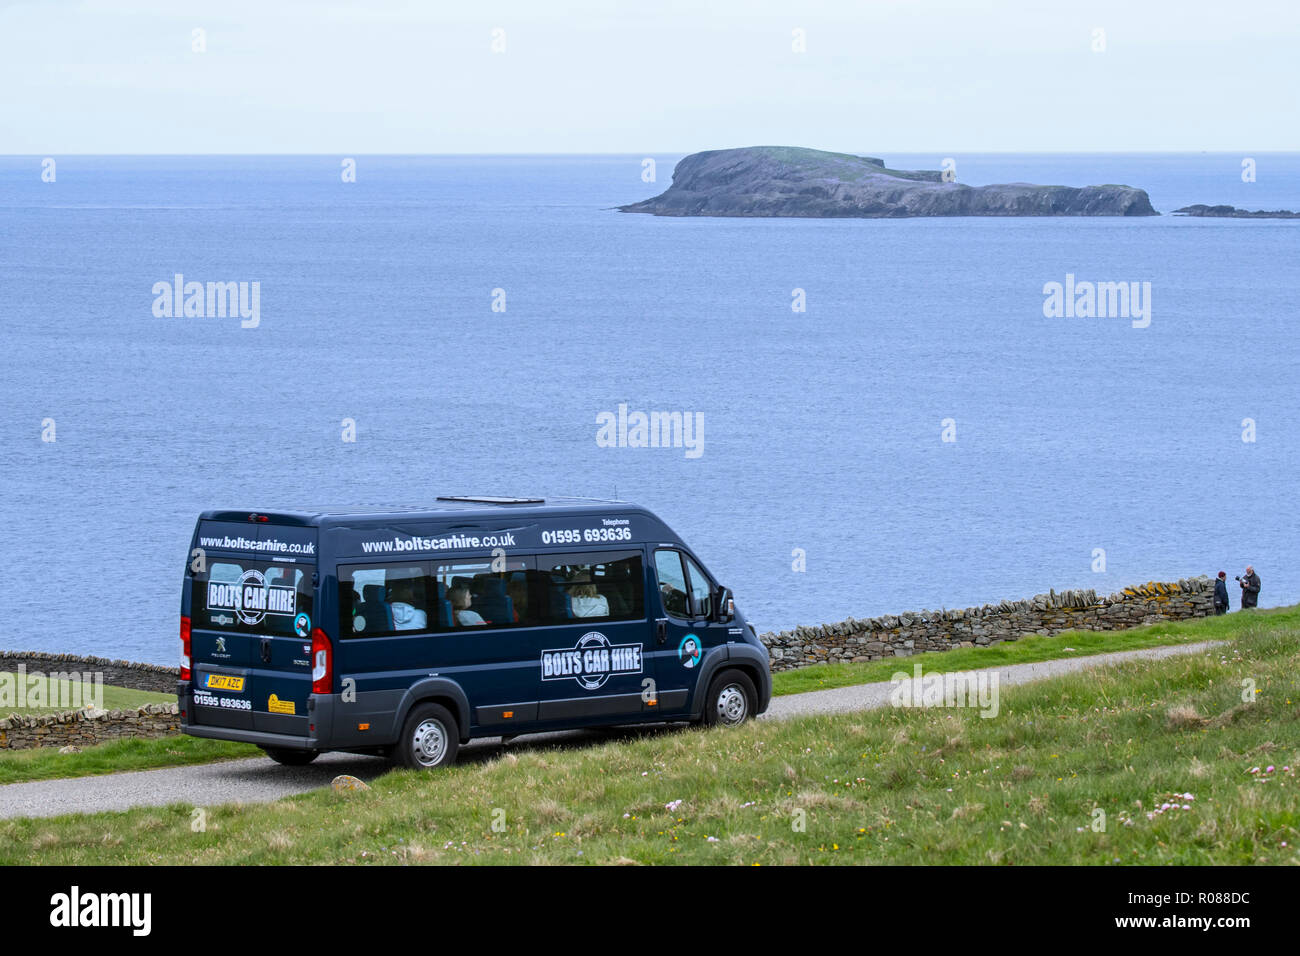 Group tourists driving along desolate coastal road in rented van / hired van from the Bolts Car Hire company in Shetland, Scotland, UK - Stock Image